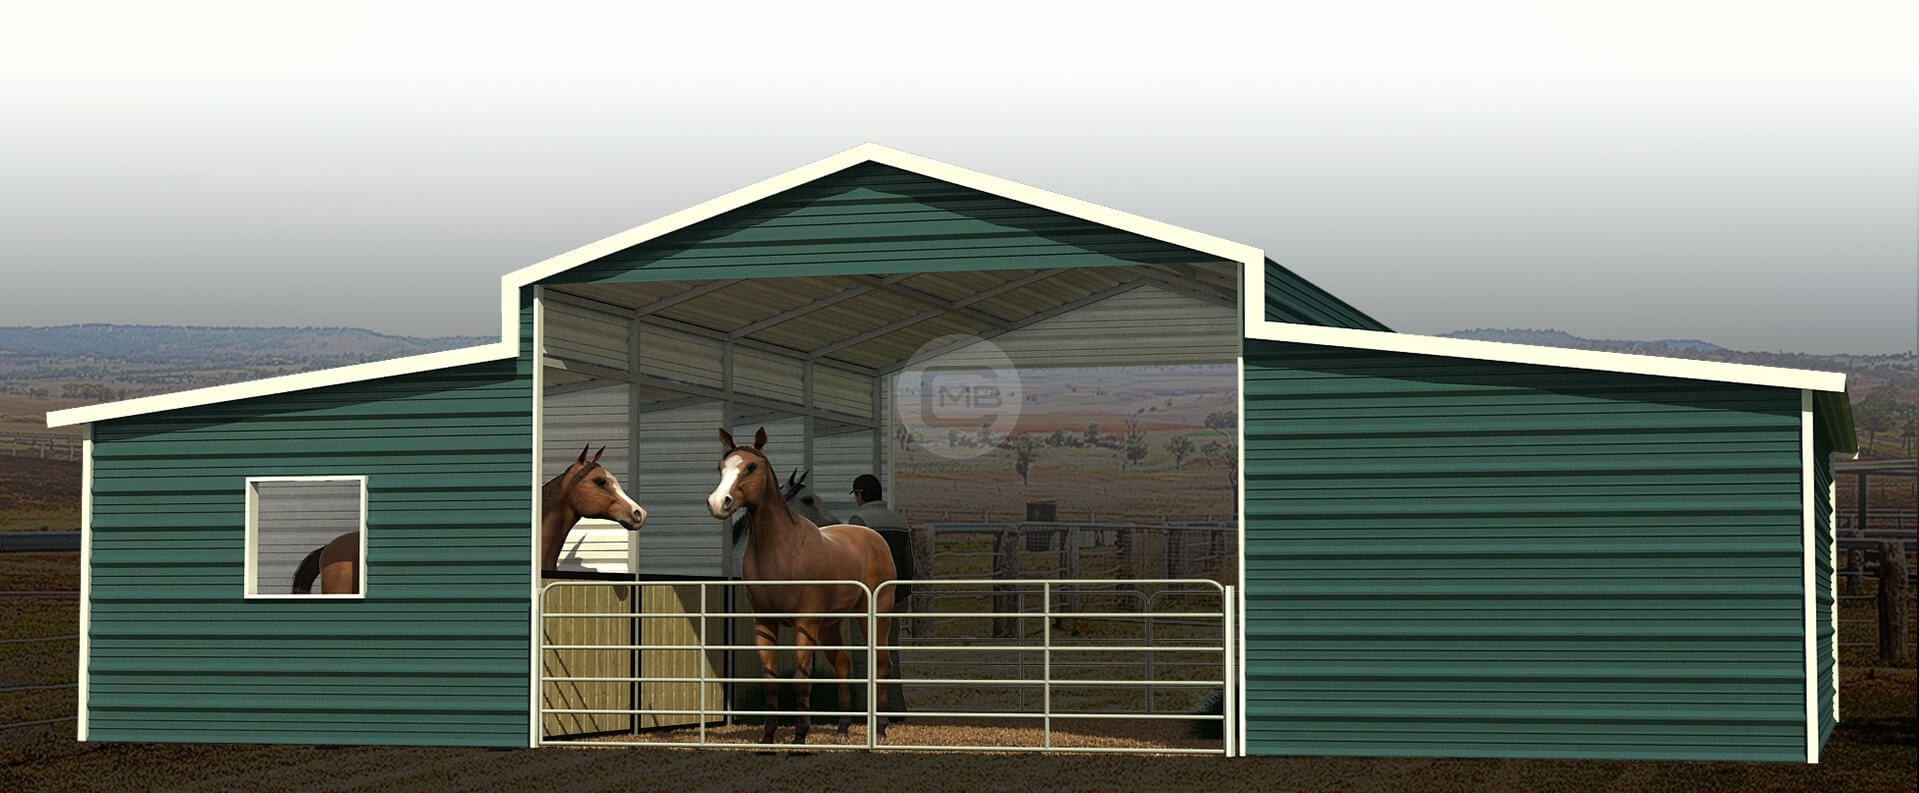 Metal Barns For Sale Metal Horse Barn Amp Storage Sheds Prices